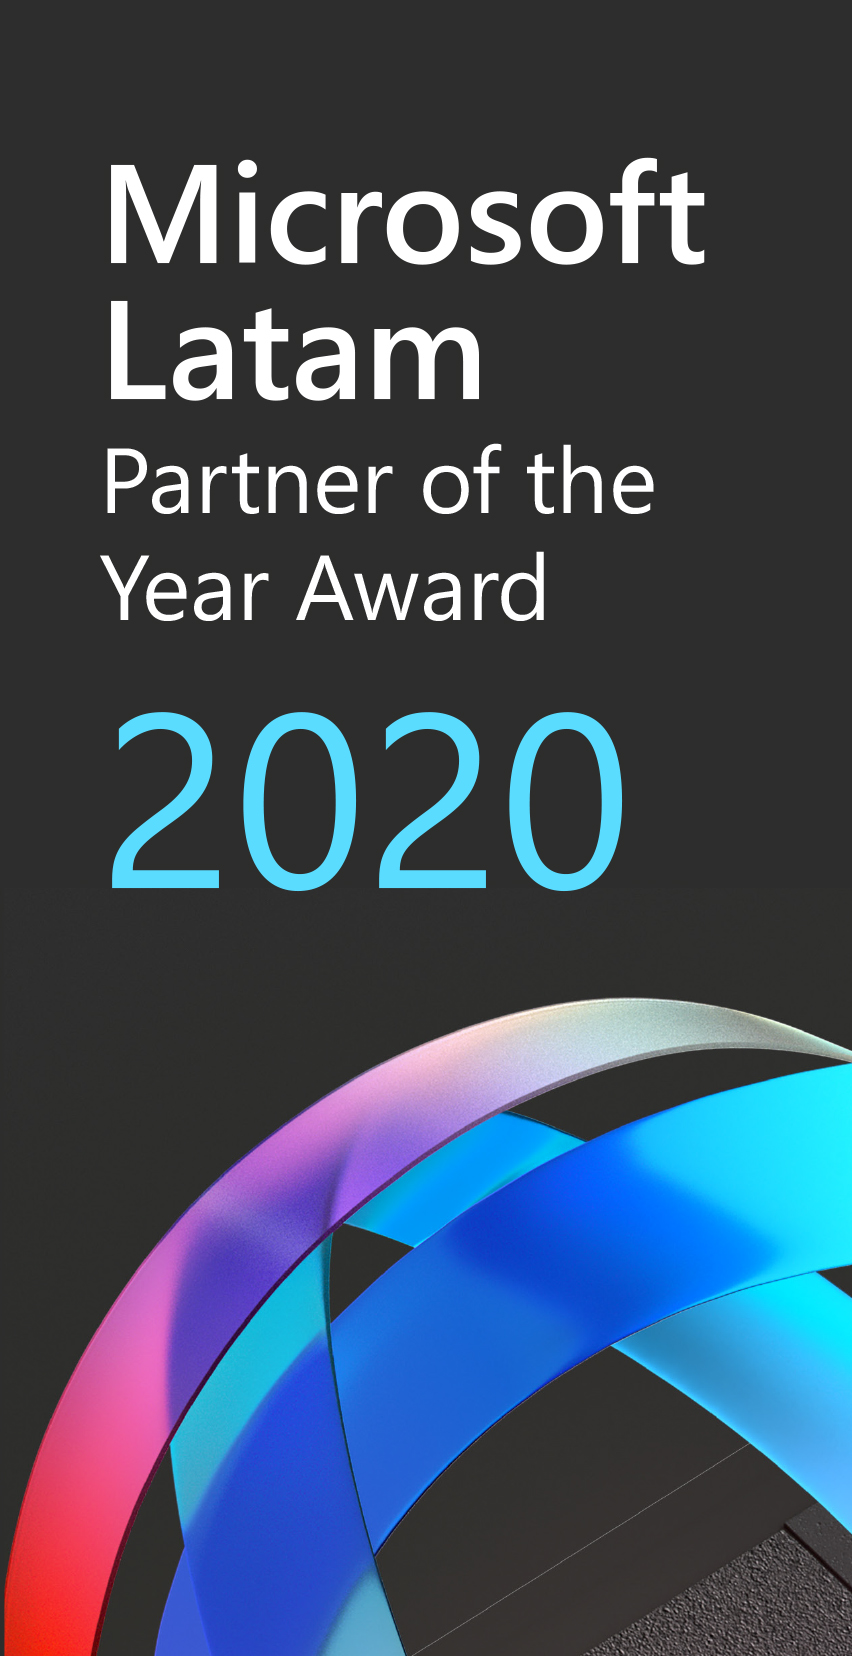 Microsoft Latam Partner of the Year Awards 2020